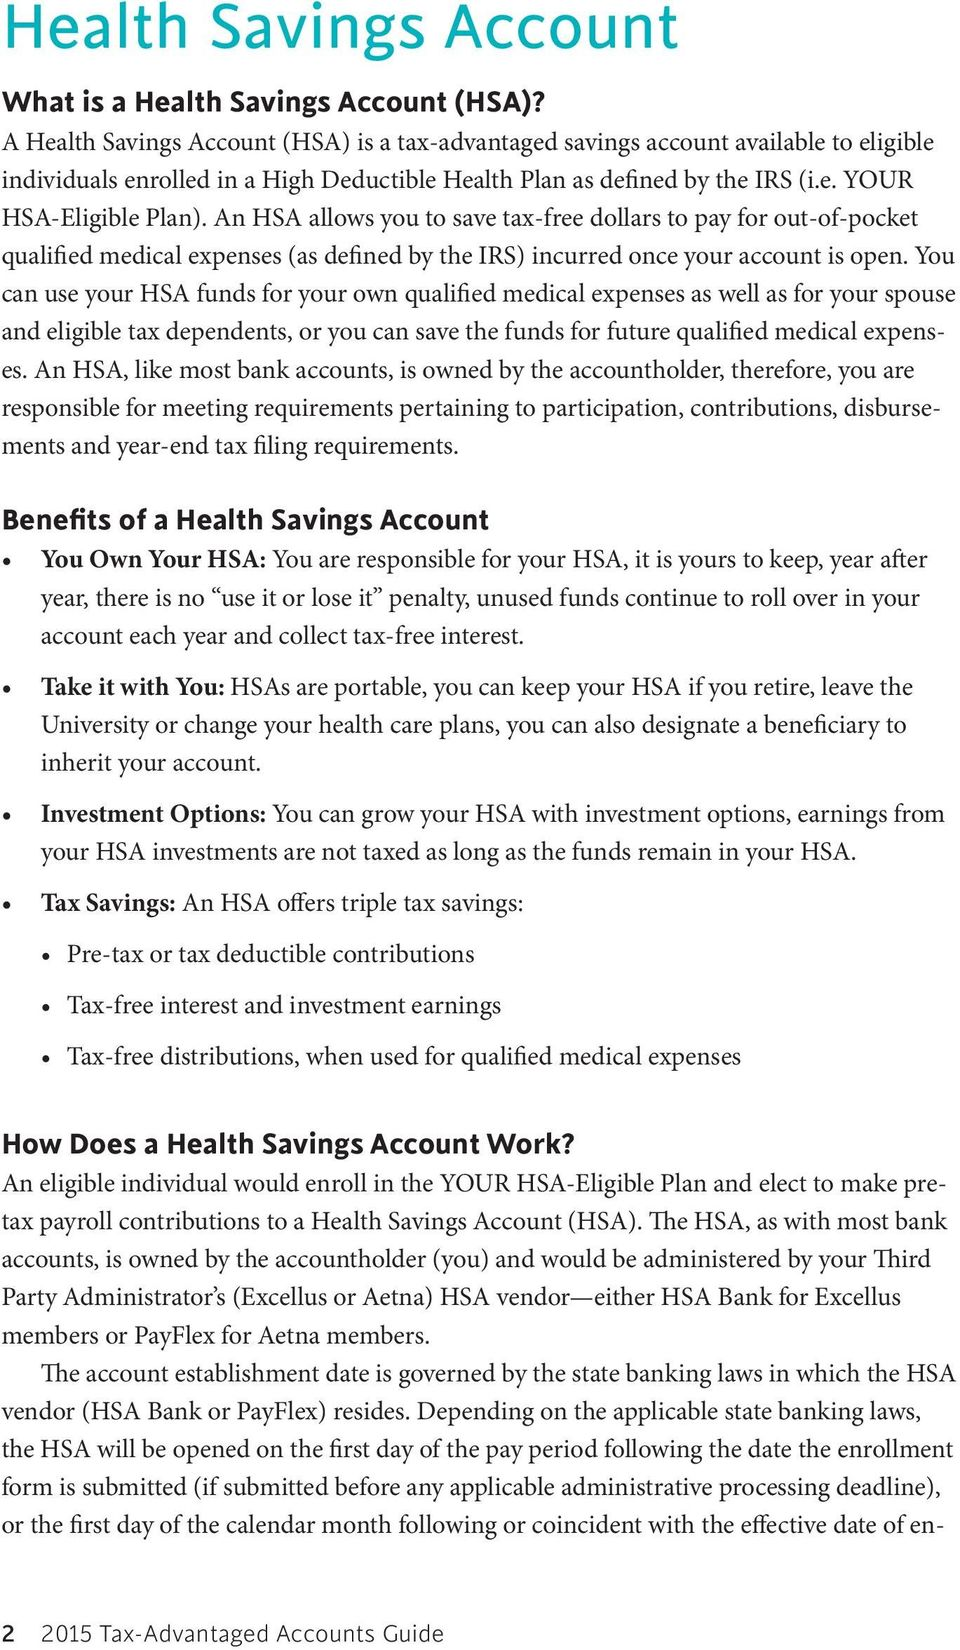 An HSA allows you to save tax-free dollars to pay for out-of-pocket qualified medical expenses (as defined by the IRS) incurred once your account is open.